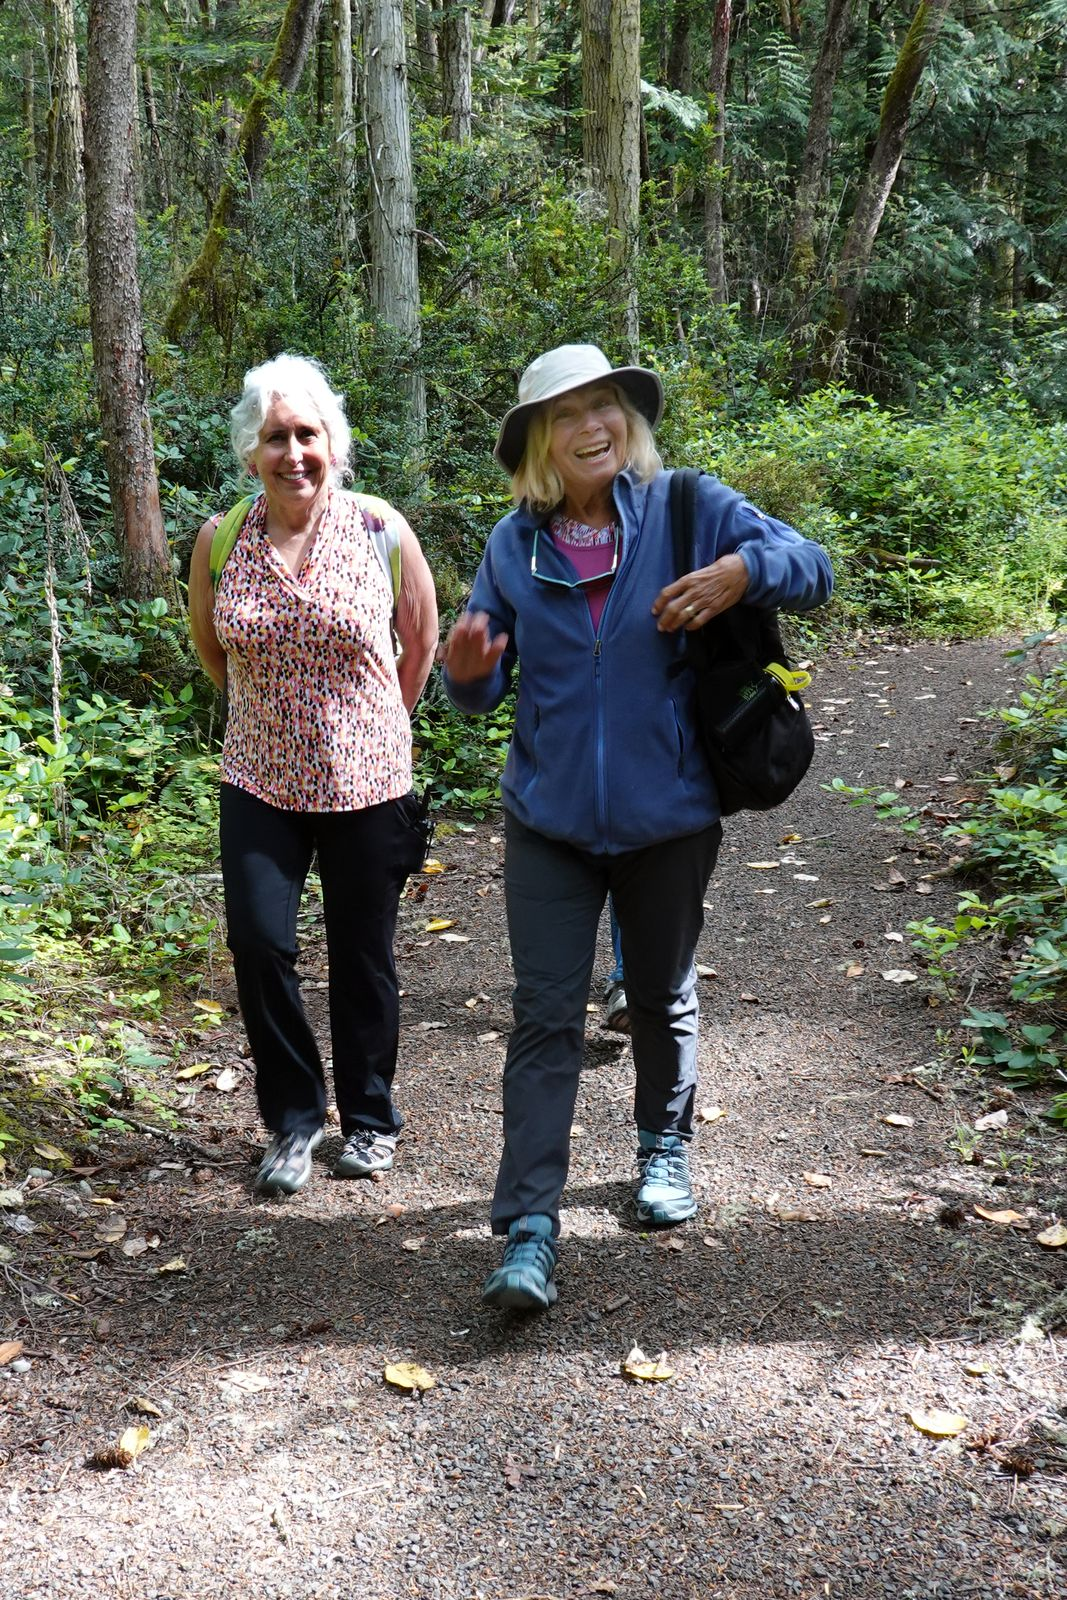 Talking about two happy hikers here they are: Merrily & Tieta